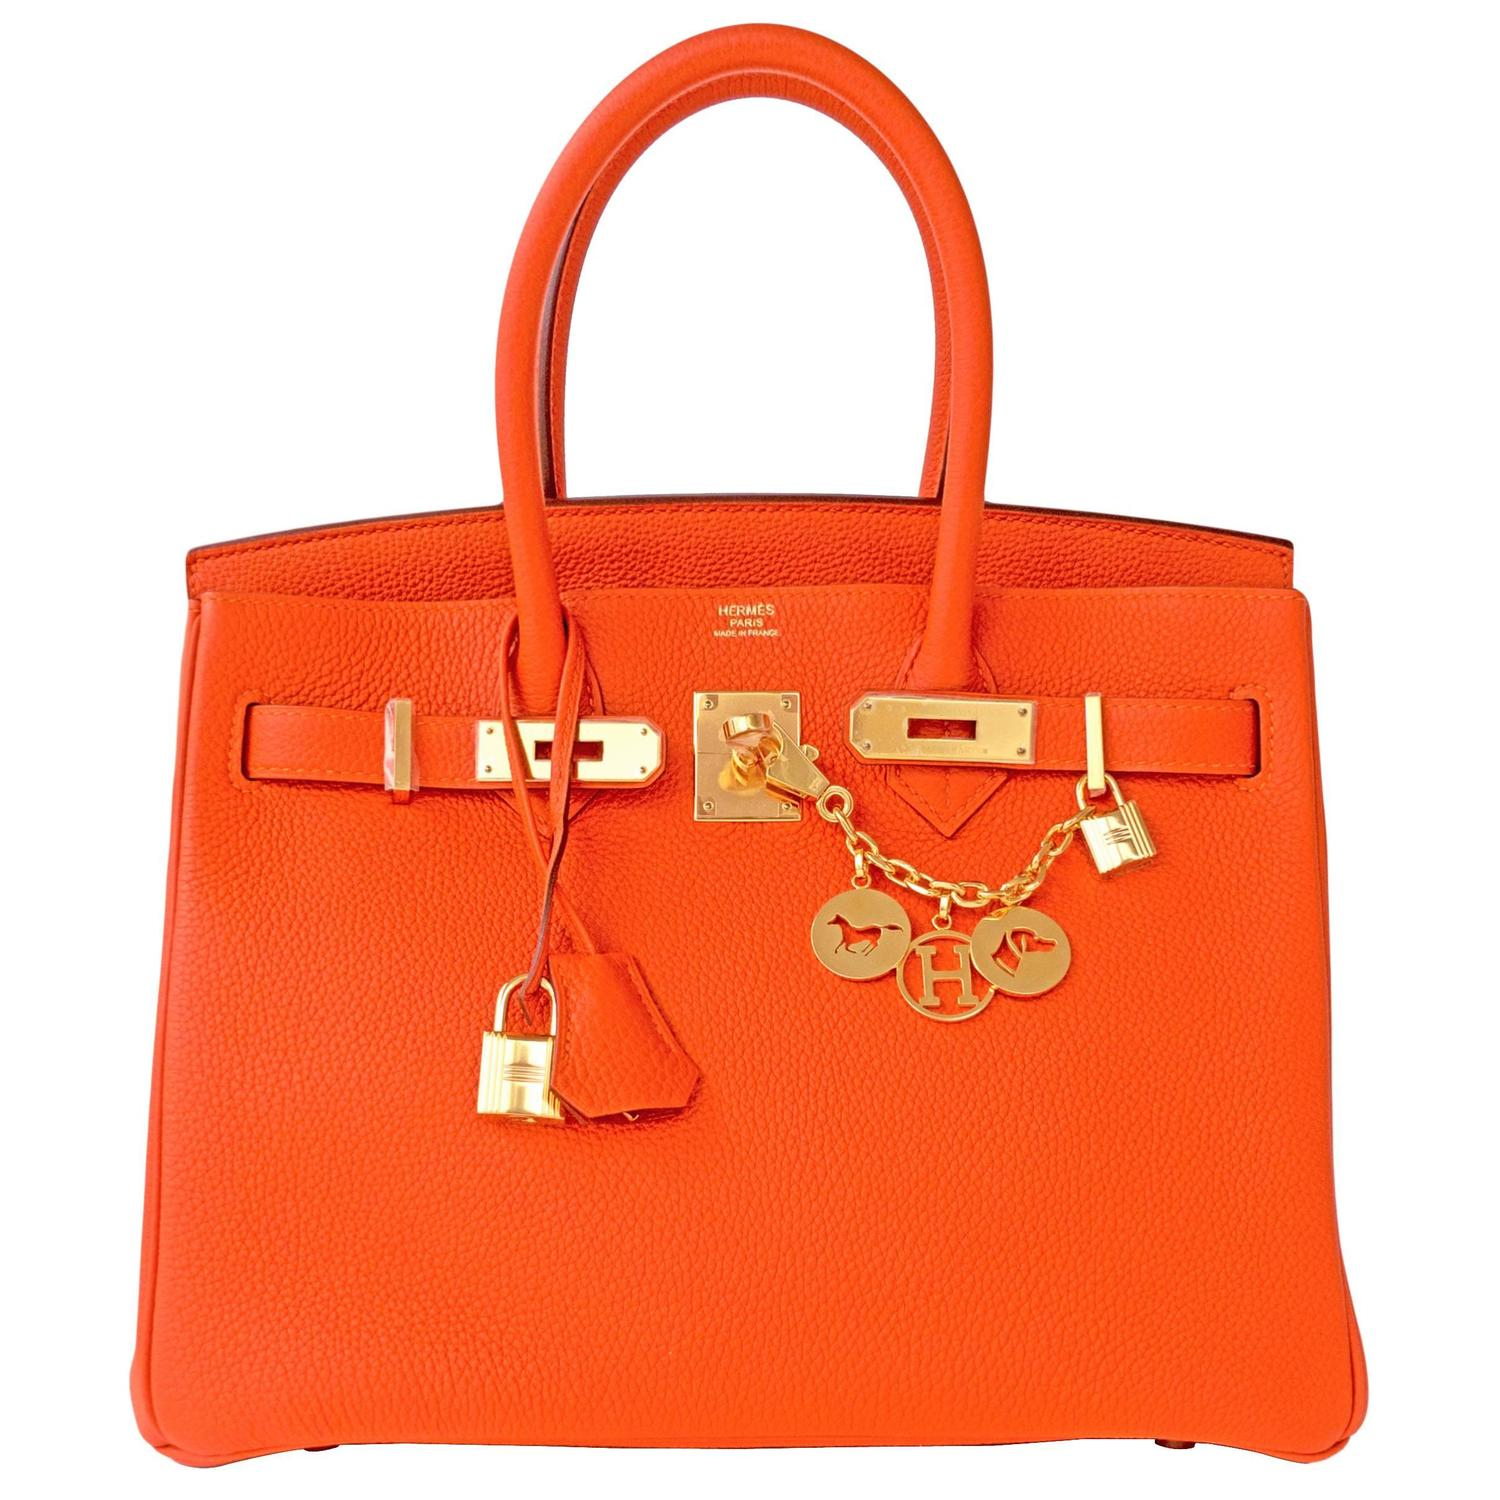 hermes style handbags - Chicjoy Tote Bags - New York, NY 10003 - 1stdibs